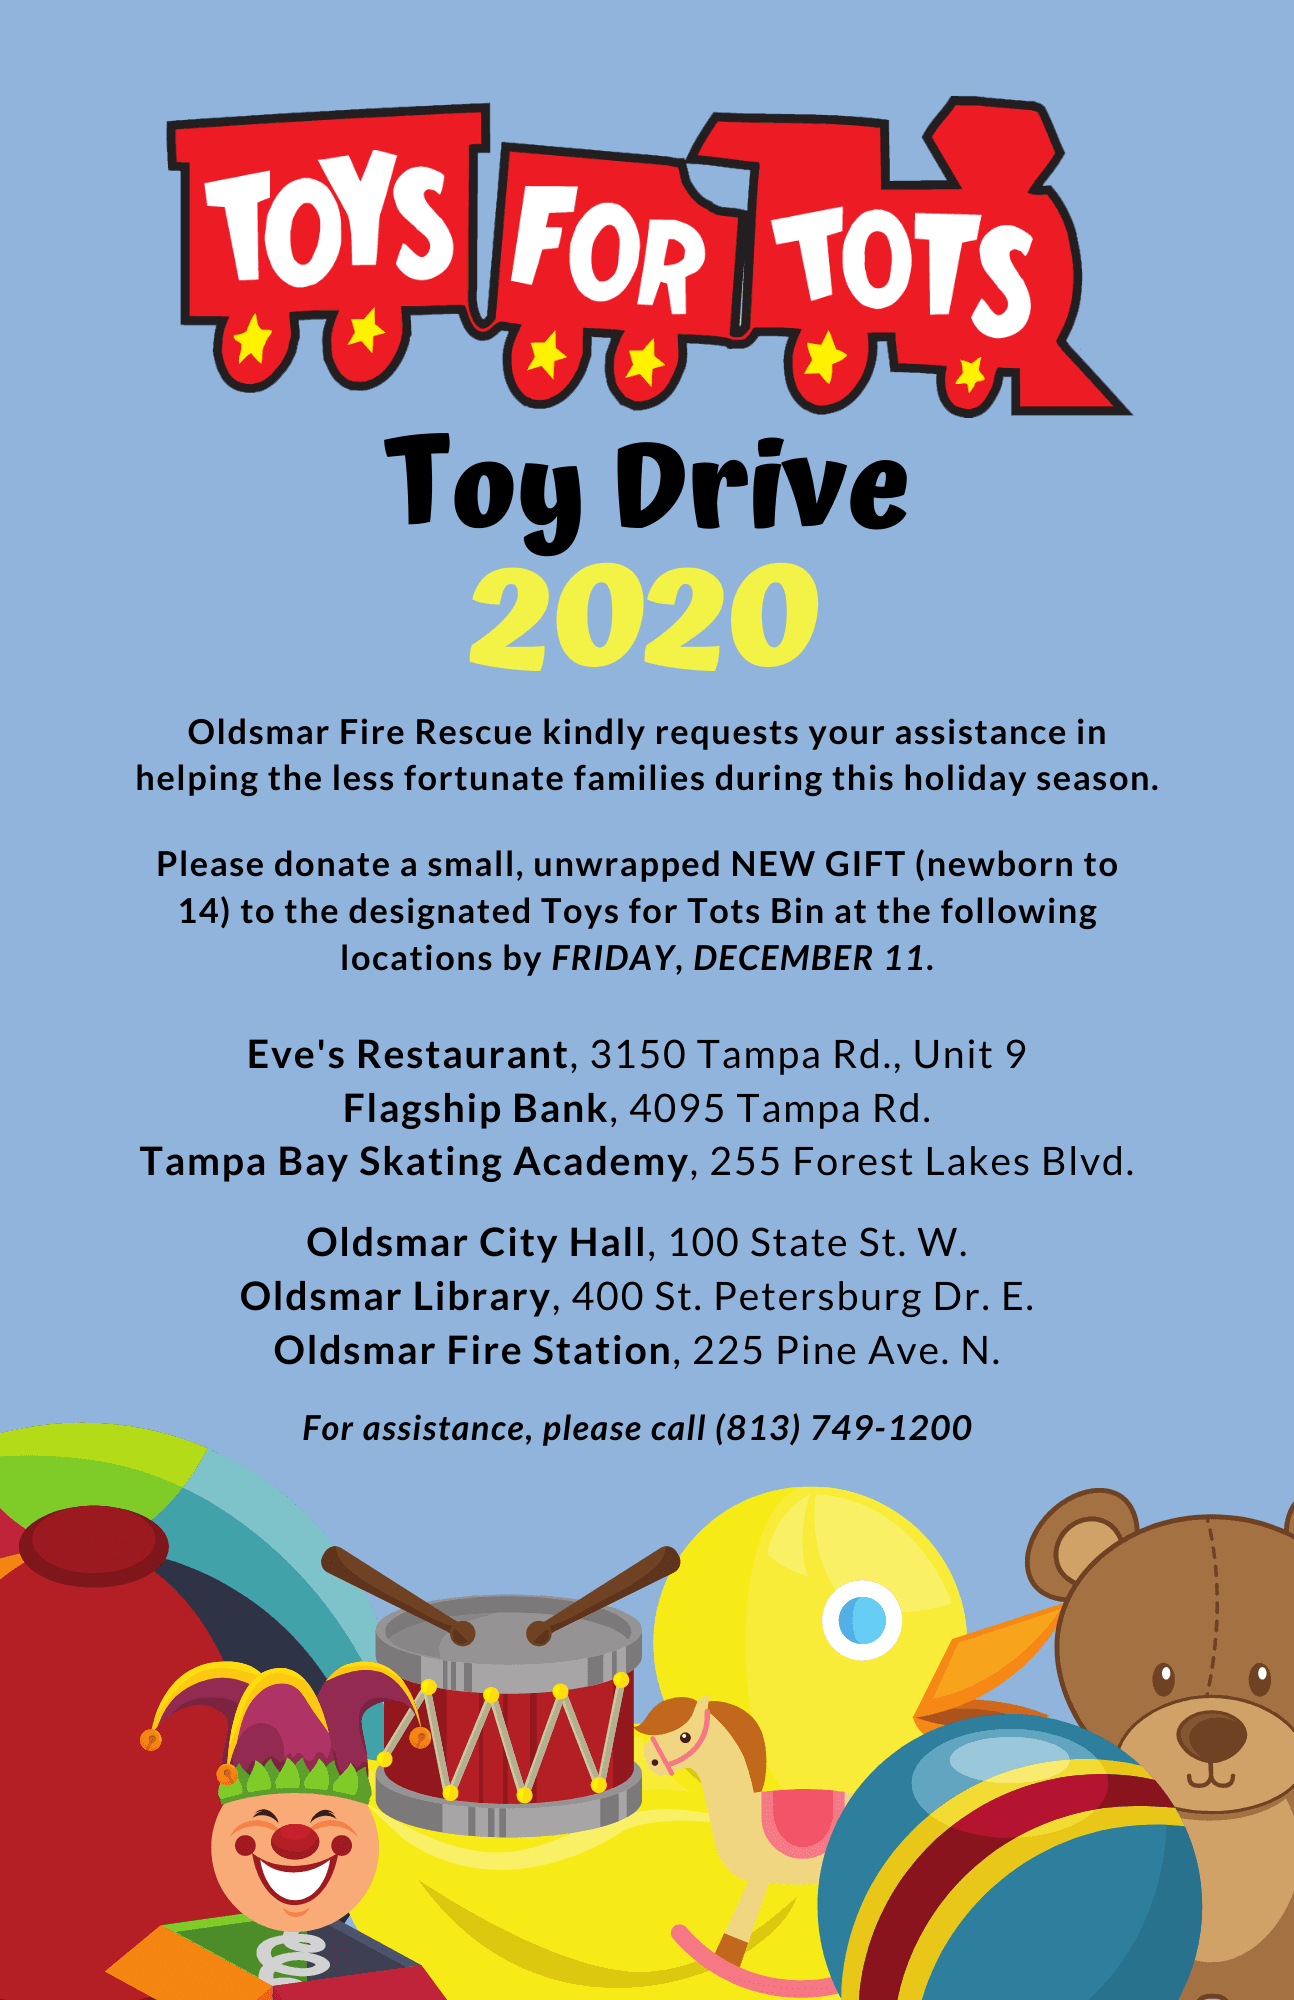 2020 TOYS FOR TOTS LOCATIONS